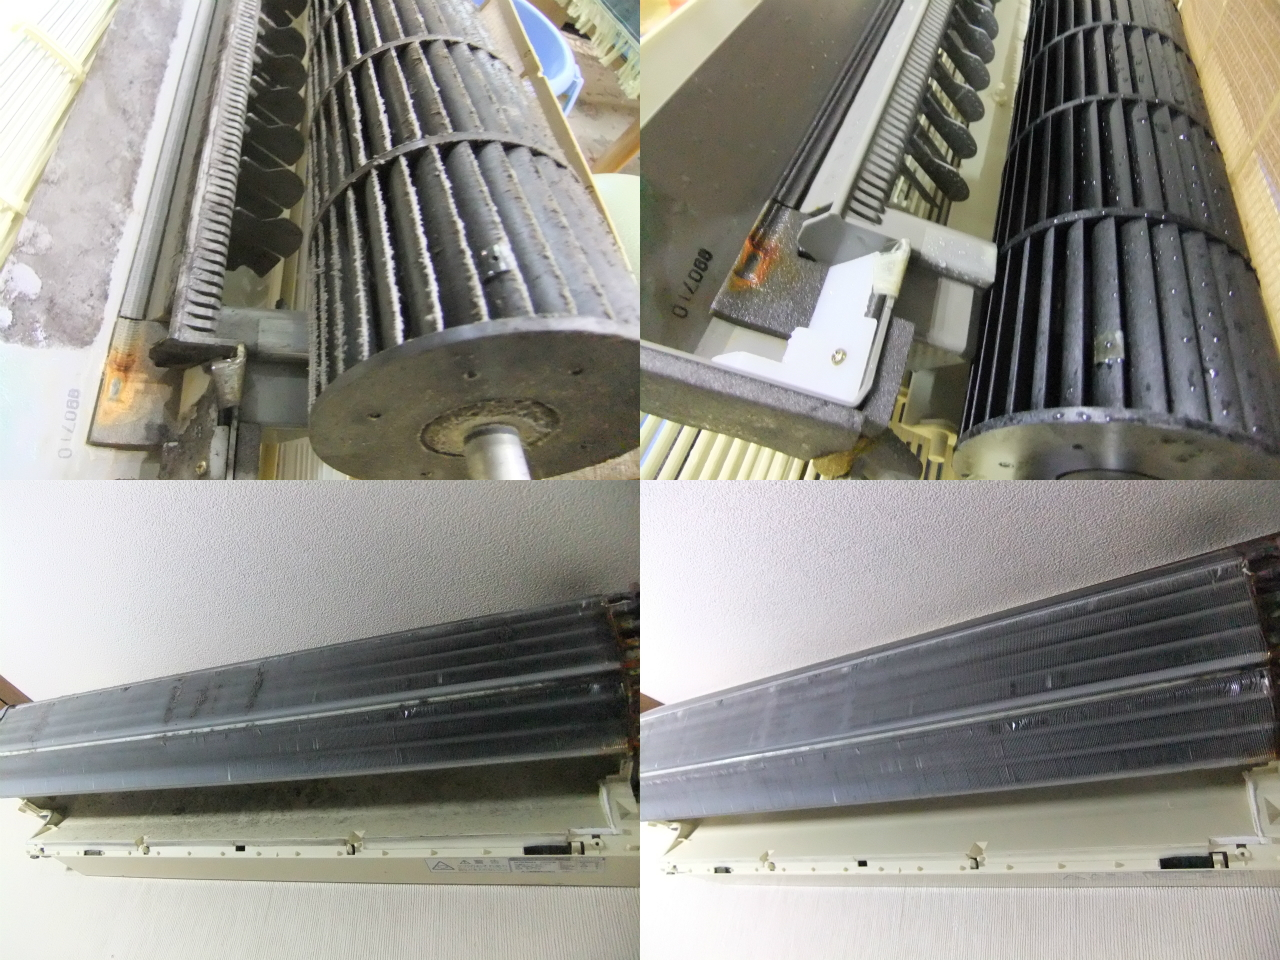 http://ajras.net/images/120619-aircon2.jpg